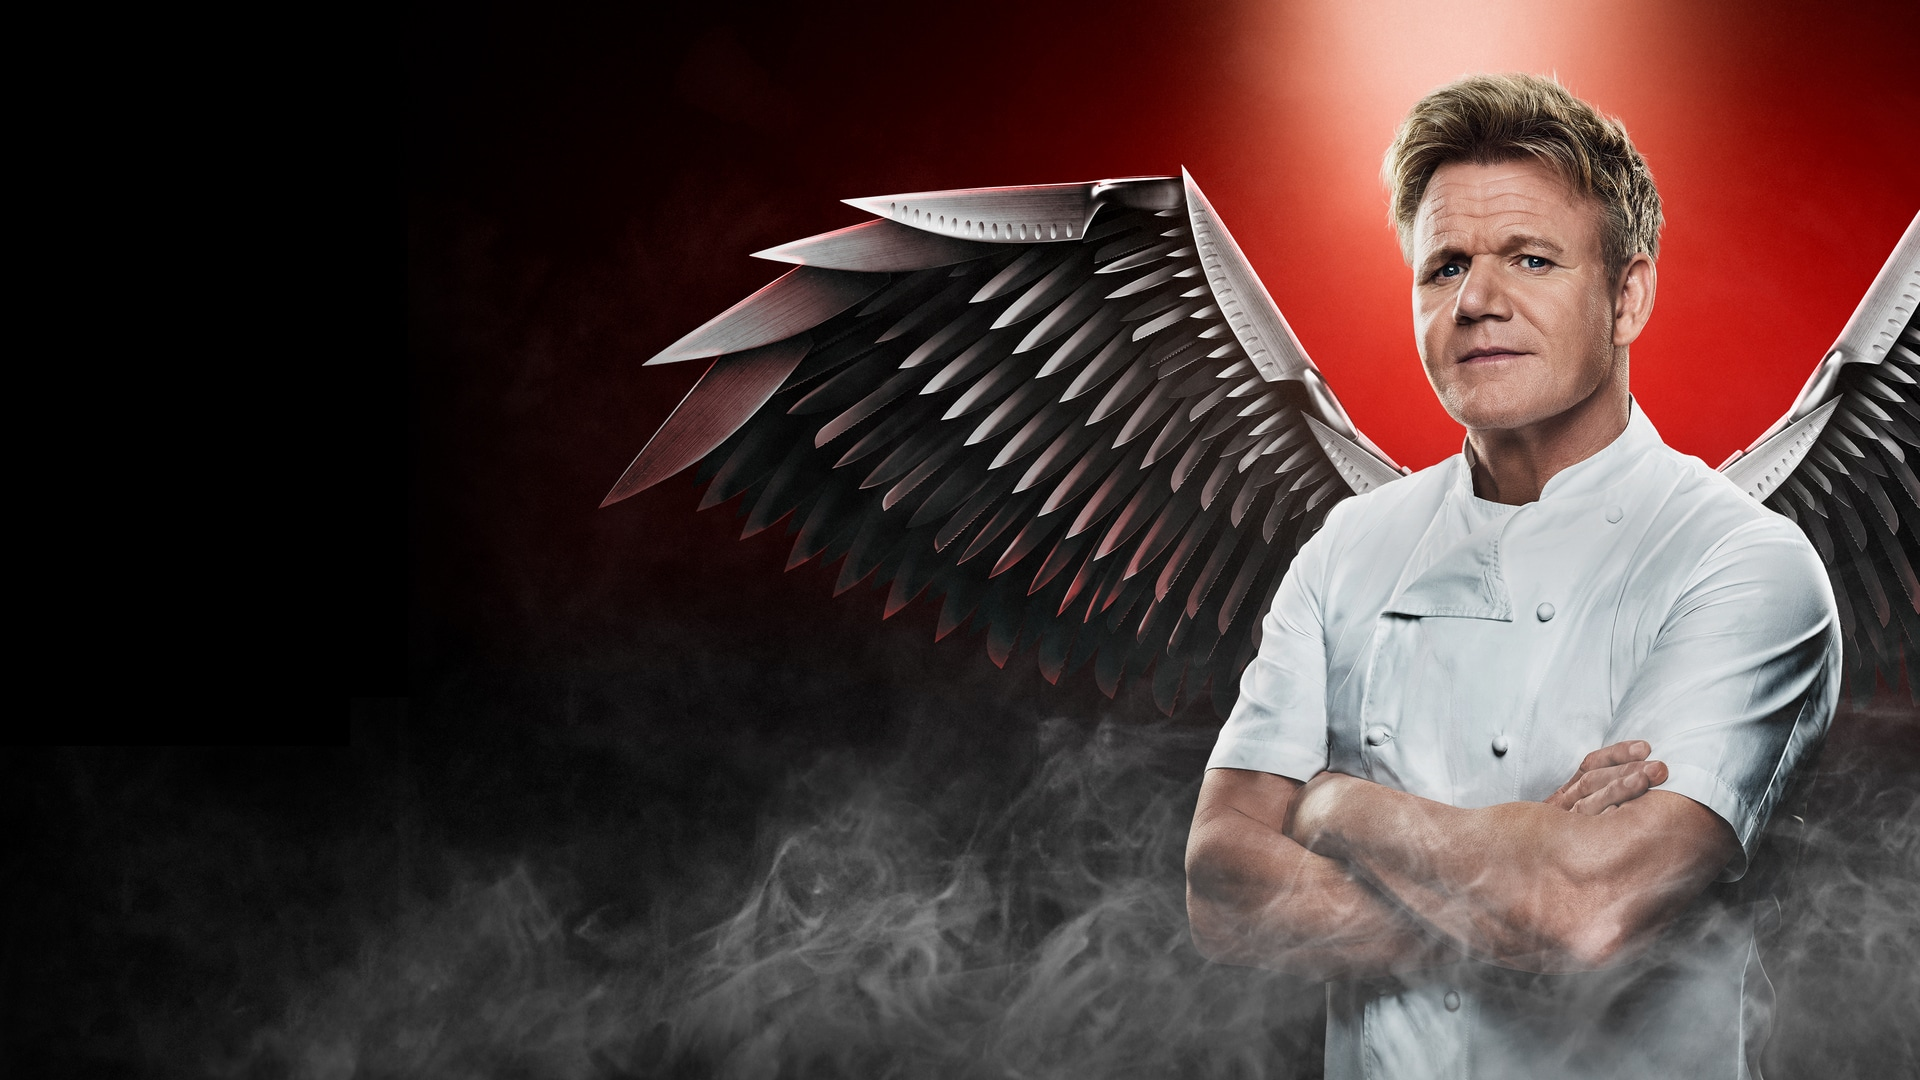 Watch Full Episodes Of Hells Kitchen With Gordon Ramsay On